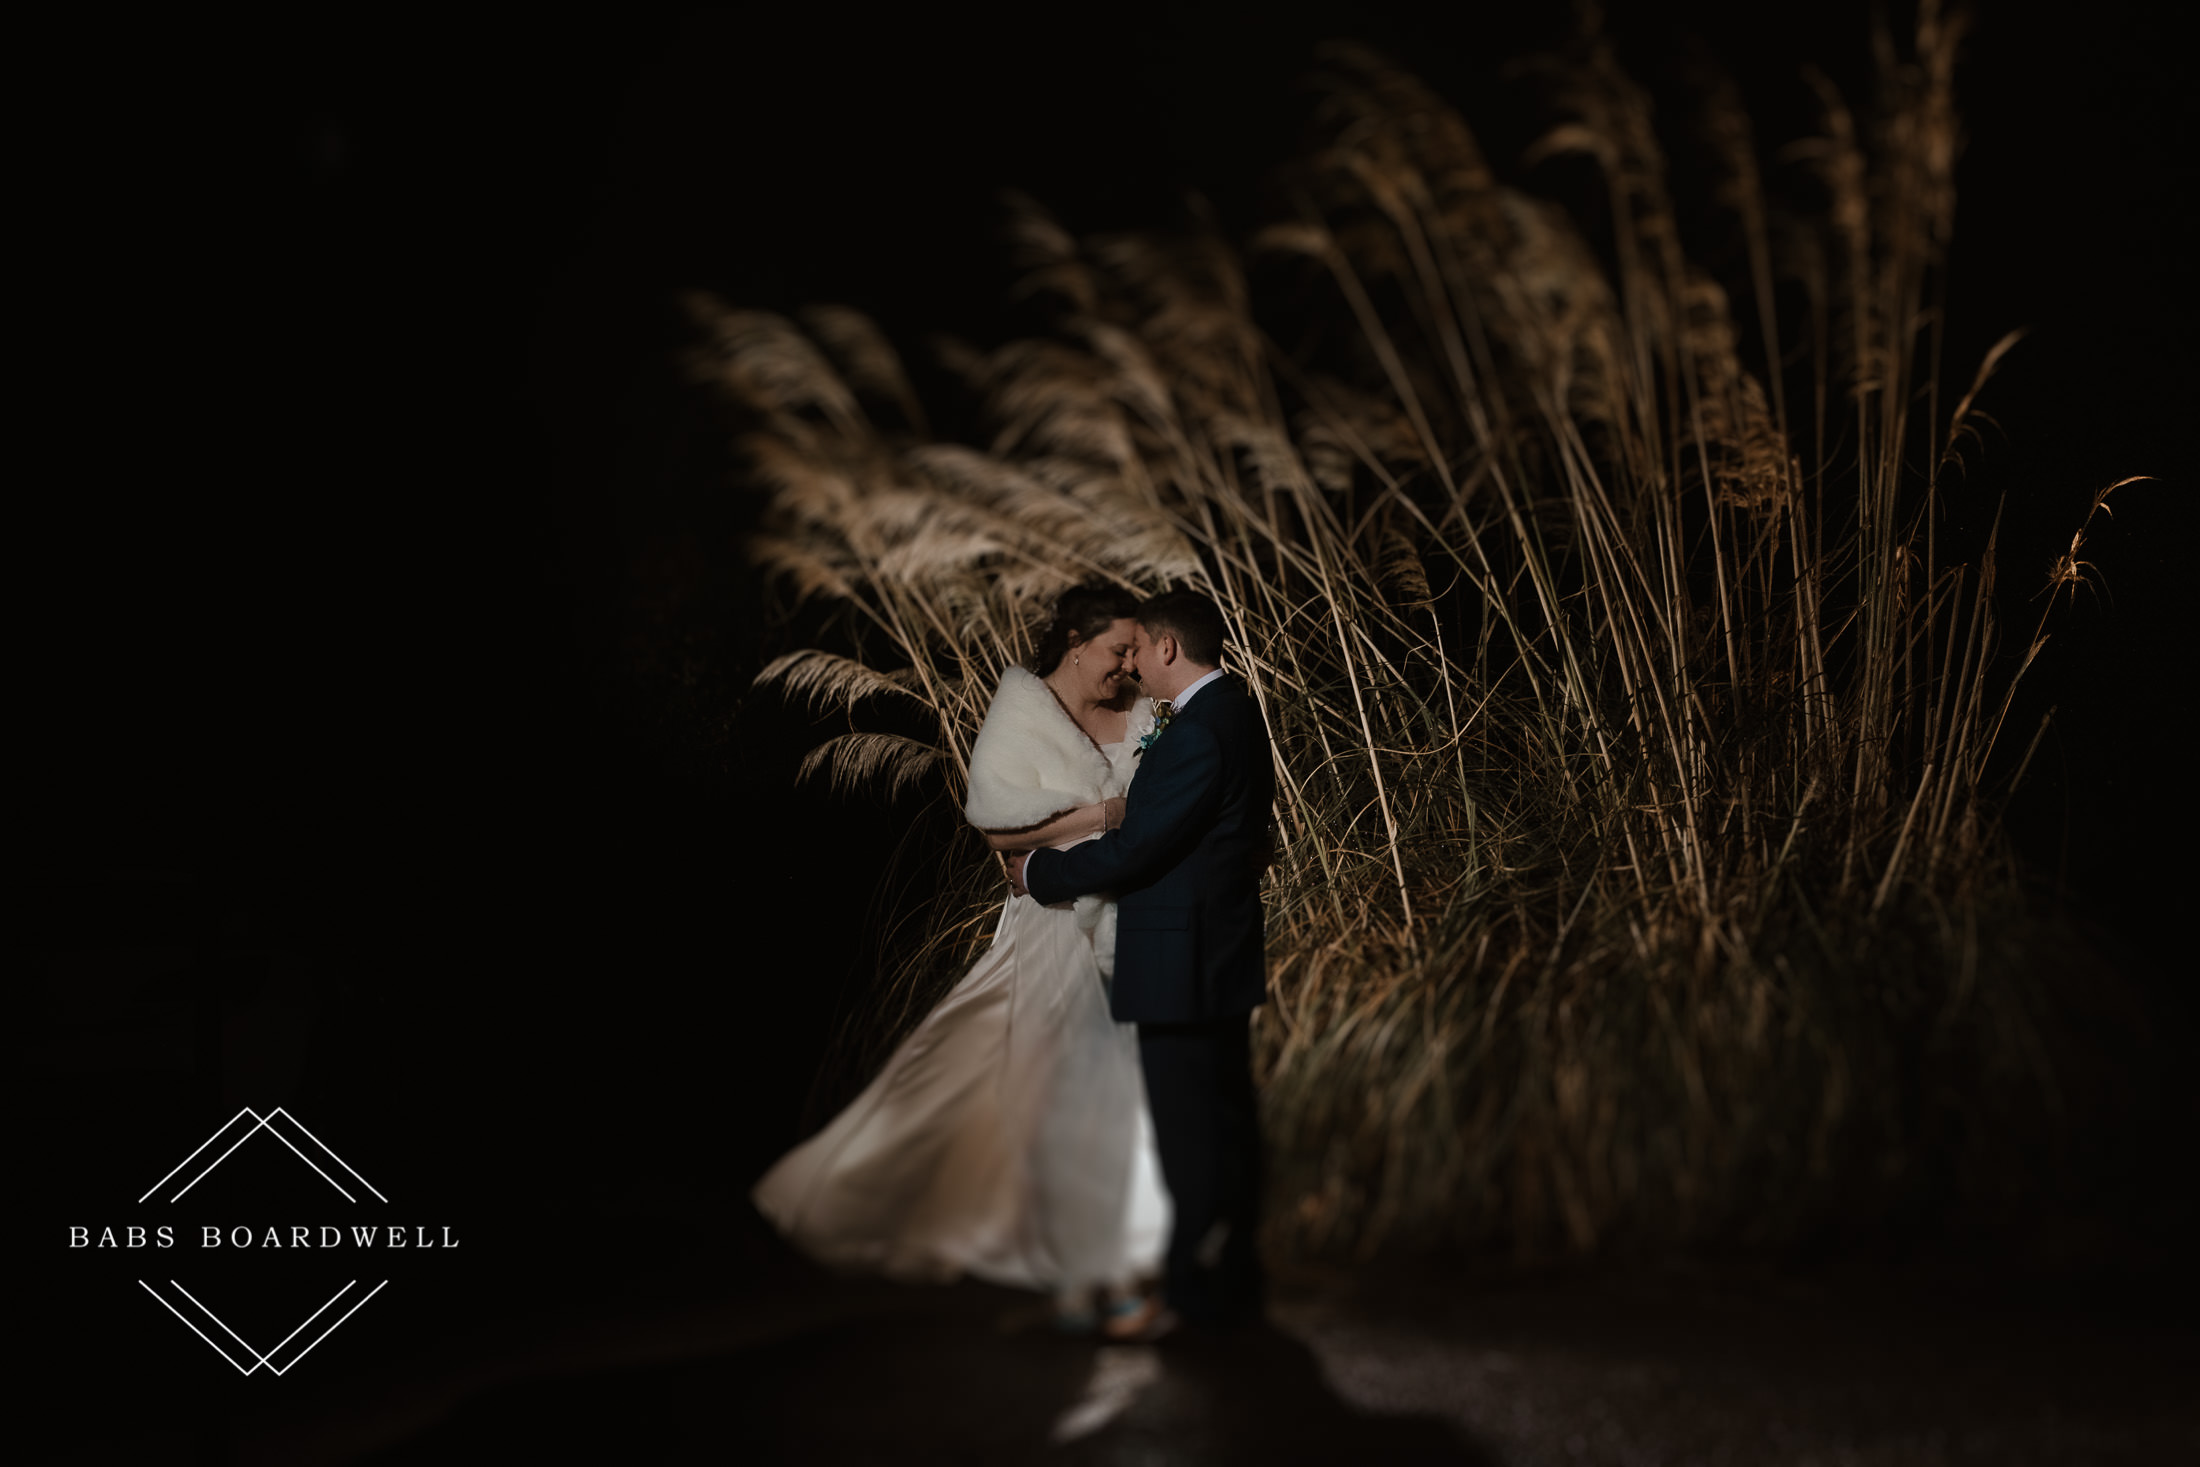 wedding day portrait of bride and groom at night outside Plas Hafod Country House Hotel